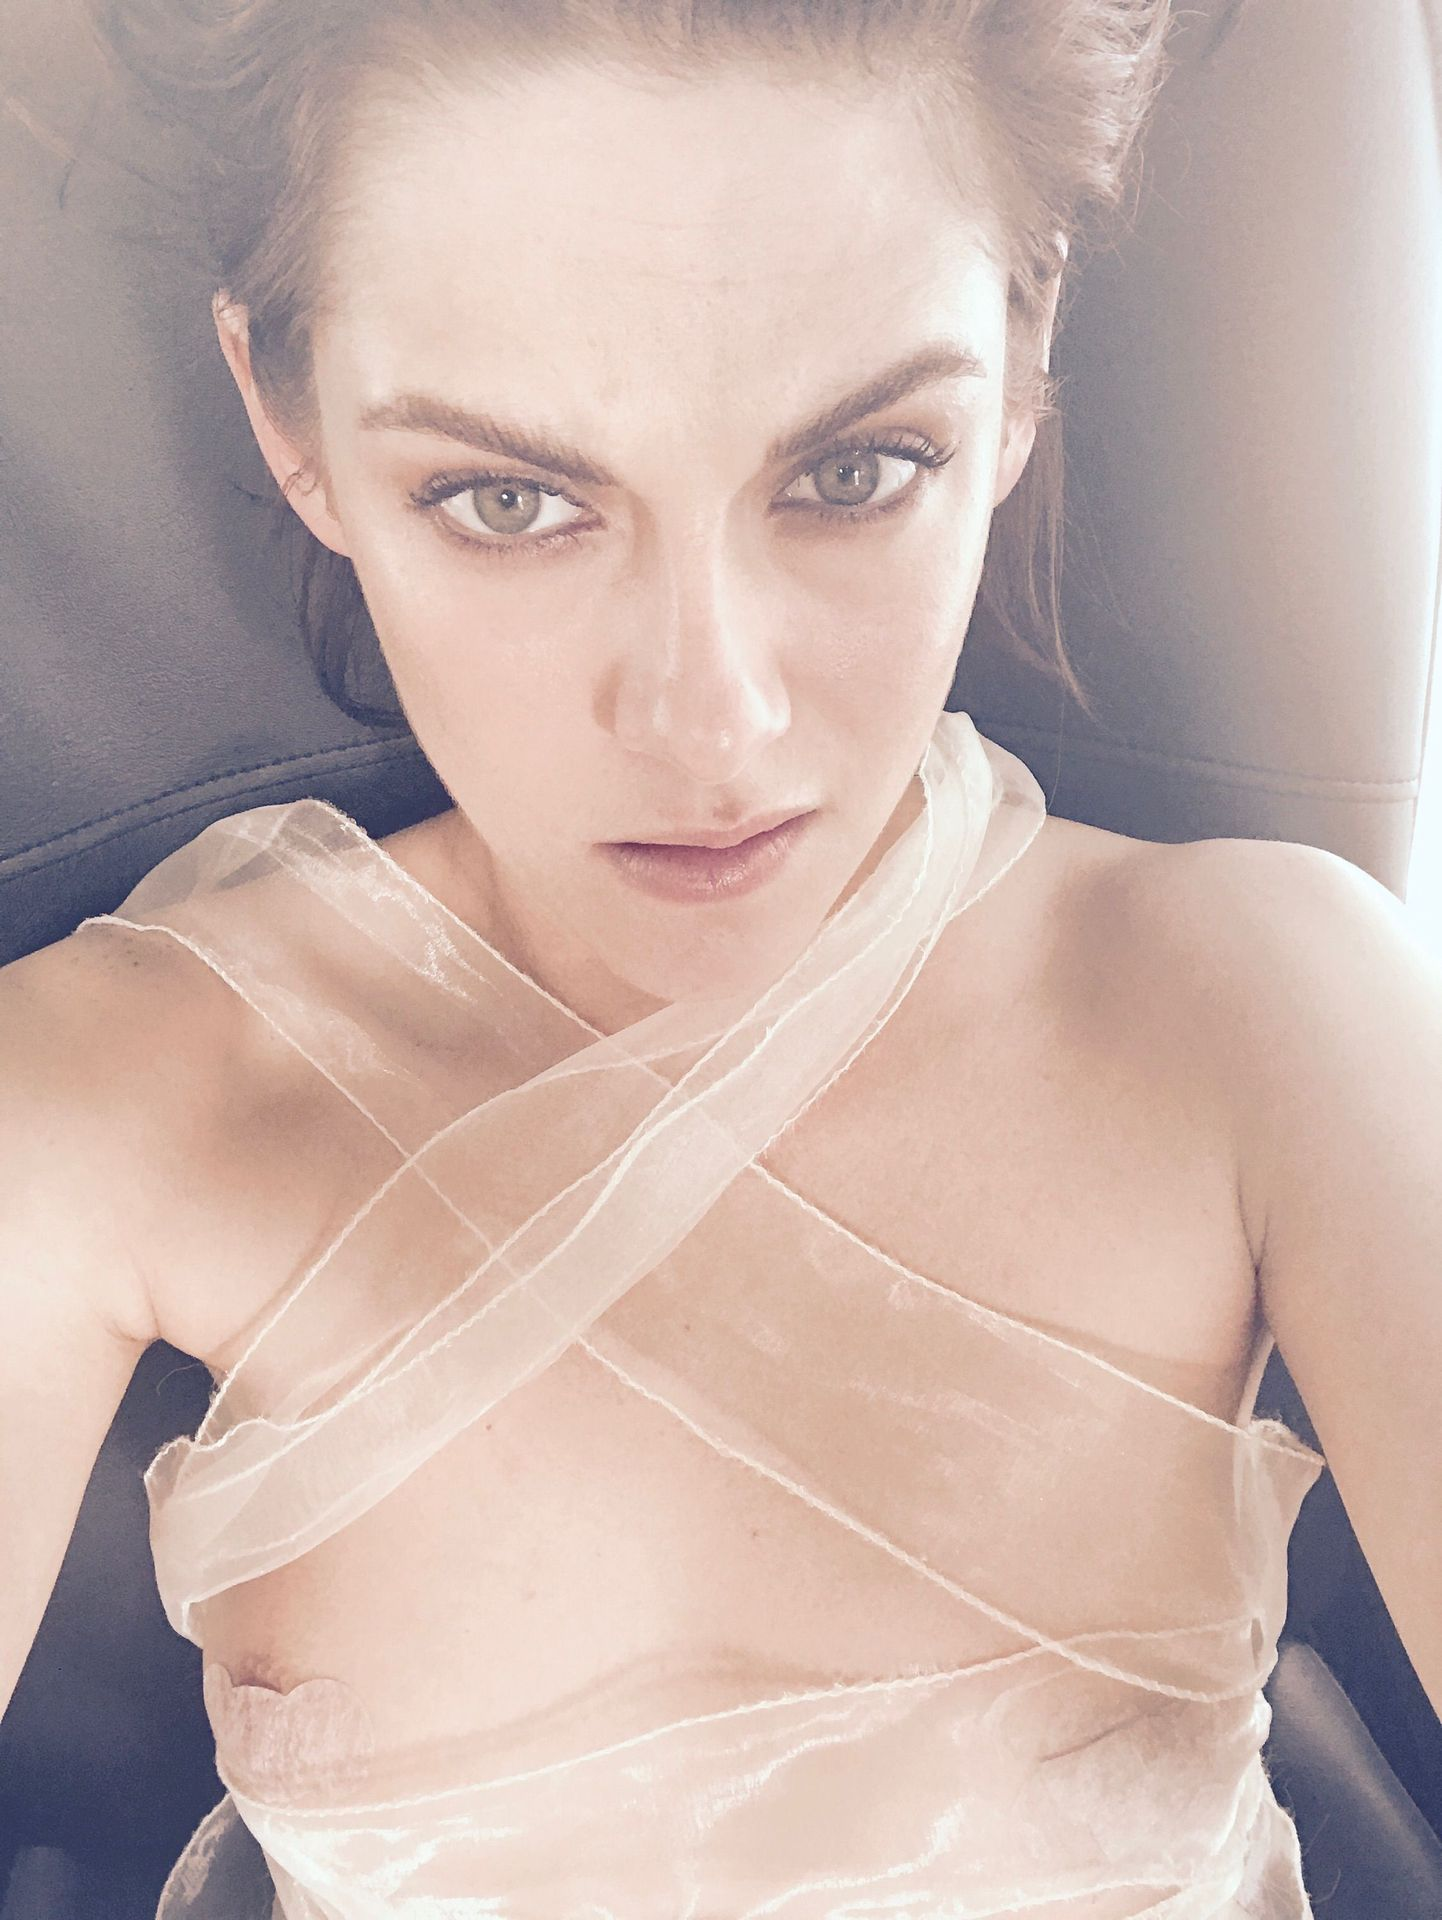 Kristen Stewart Nude Leaked The Fappening Complete Collection 0072